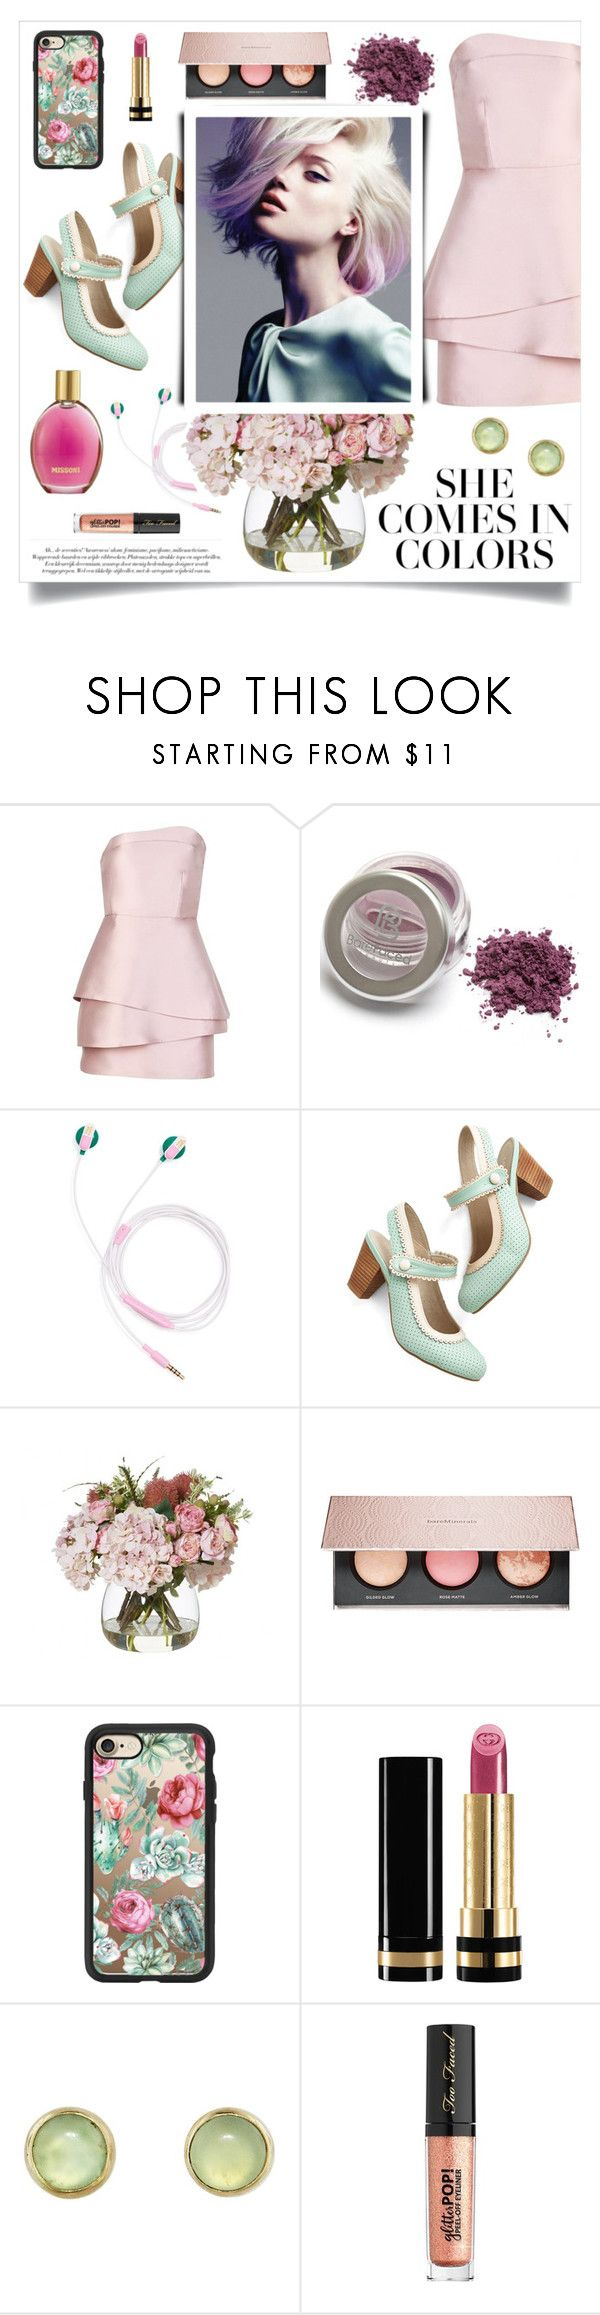 """""""Pastel love"""" by linmari ❤ liked on Polyvore featuring Mestiza, ban.do, Chelsea Crew, Missoni, Bare Escentuals, Casetify, Gucci, Melissa Joy Manning and Too Faced Cosmetics"""